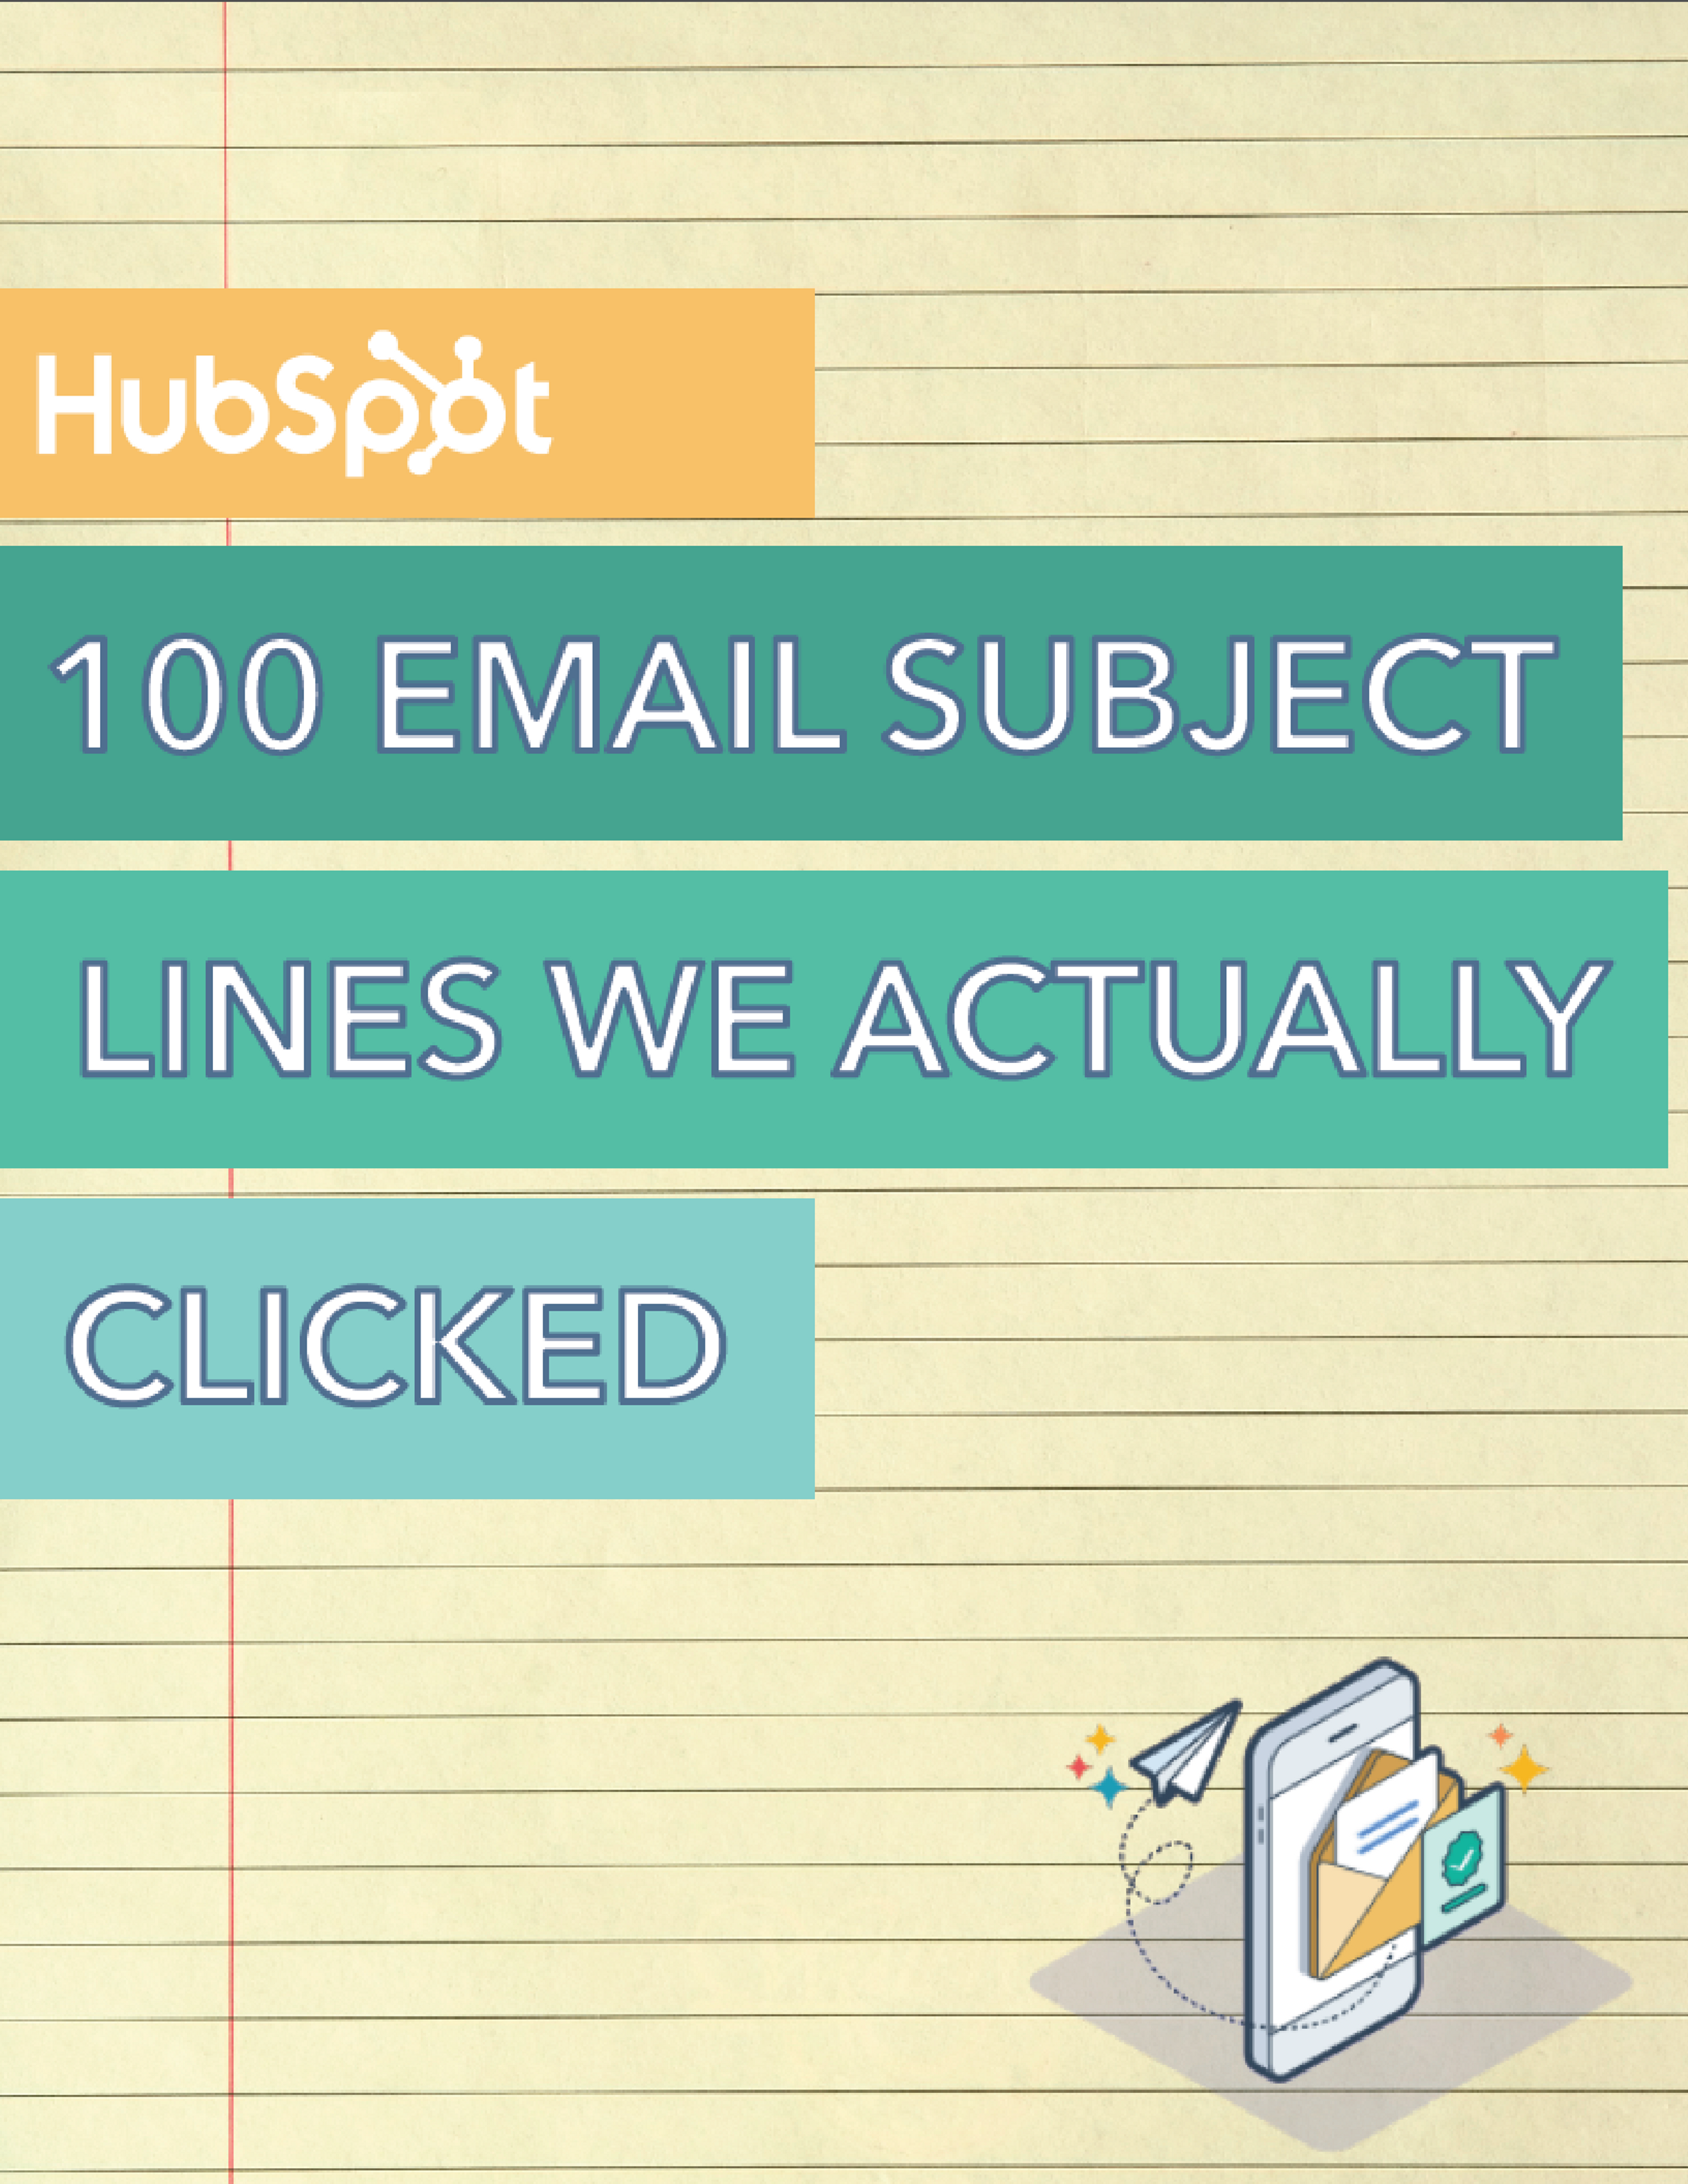 Email Subject Line Inspiration for Startups and Entrepreneurs